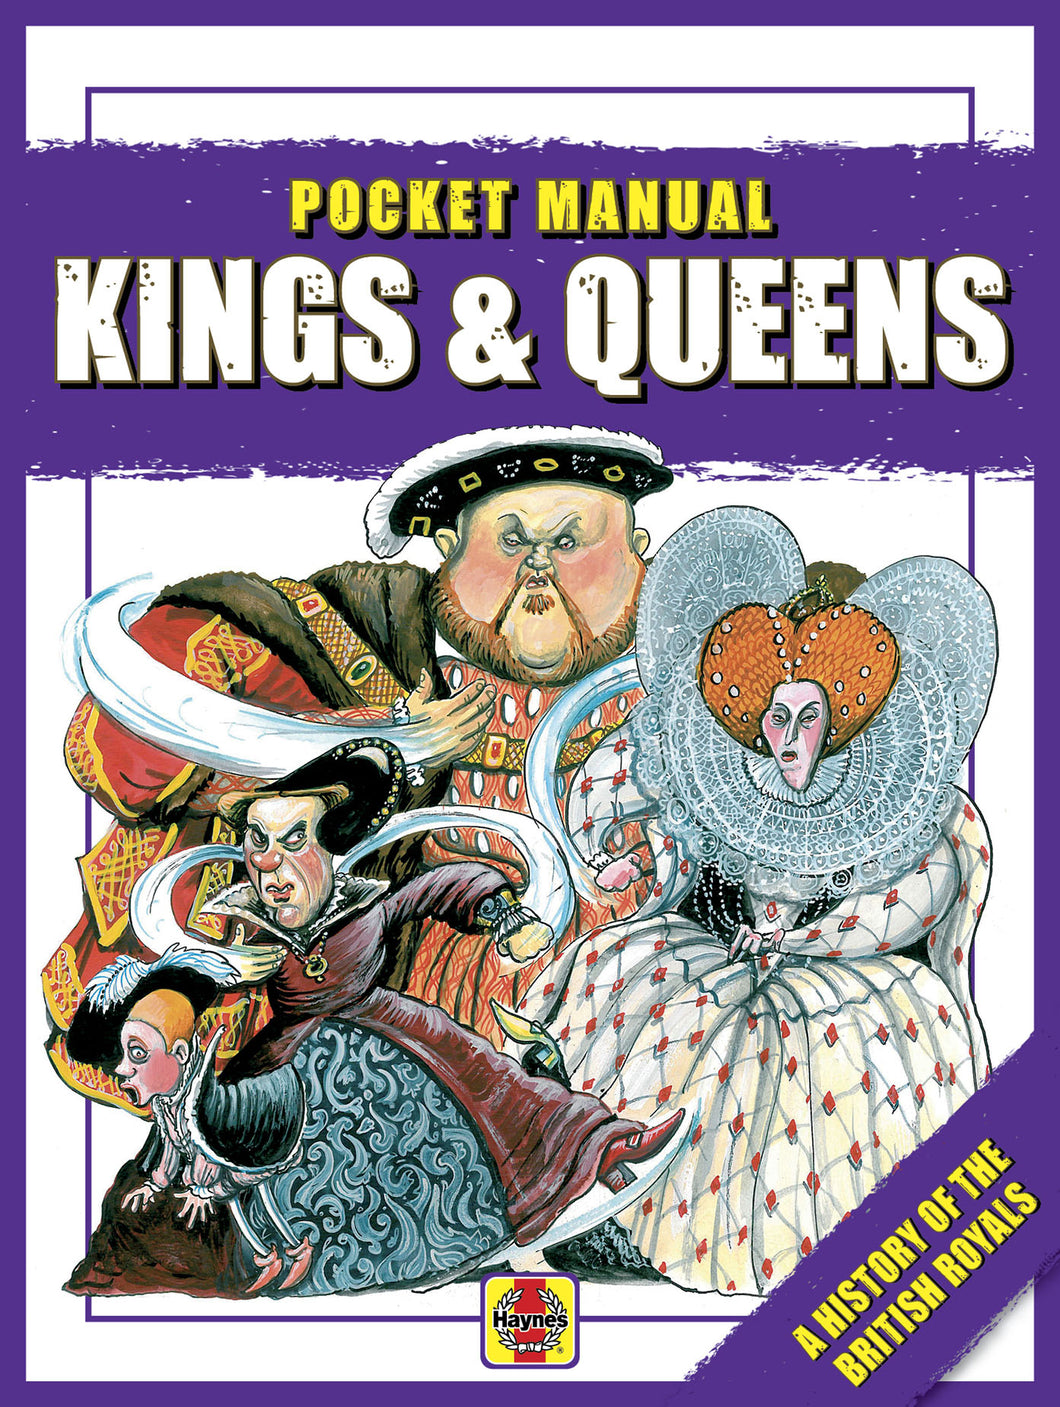 Pocket Manual - Kings & Queens